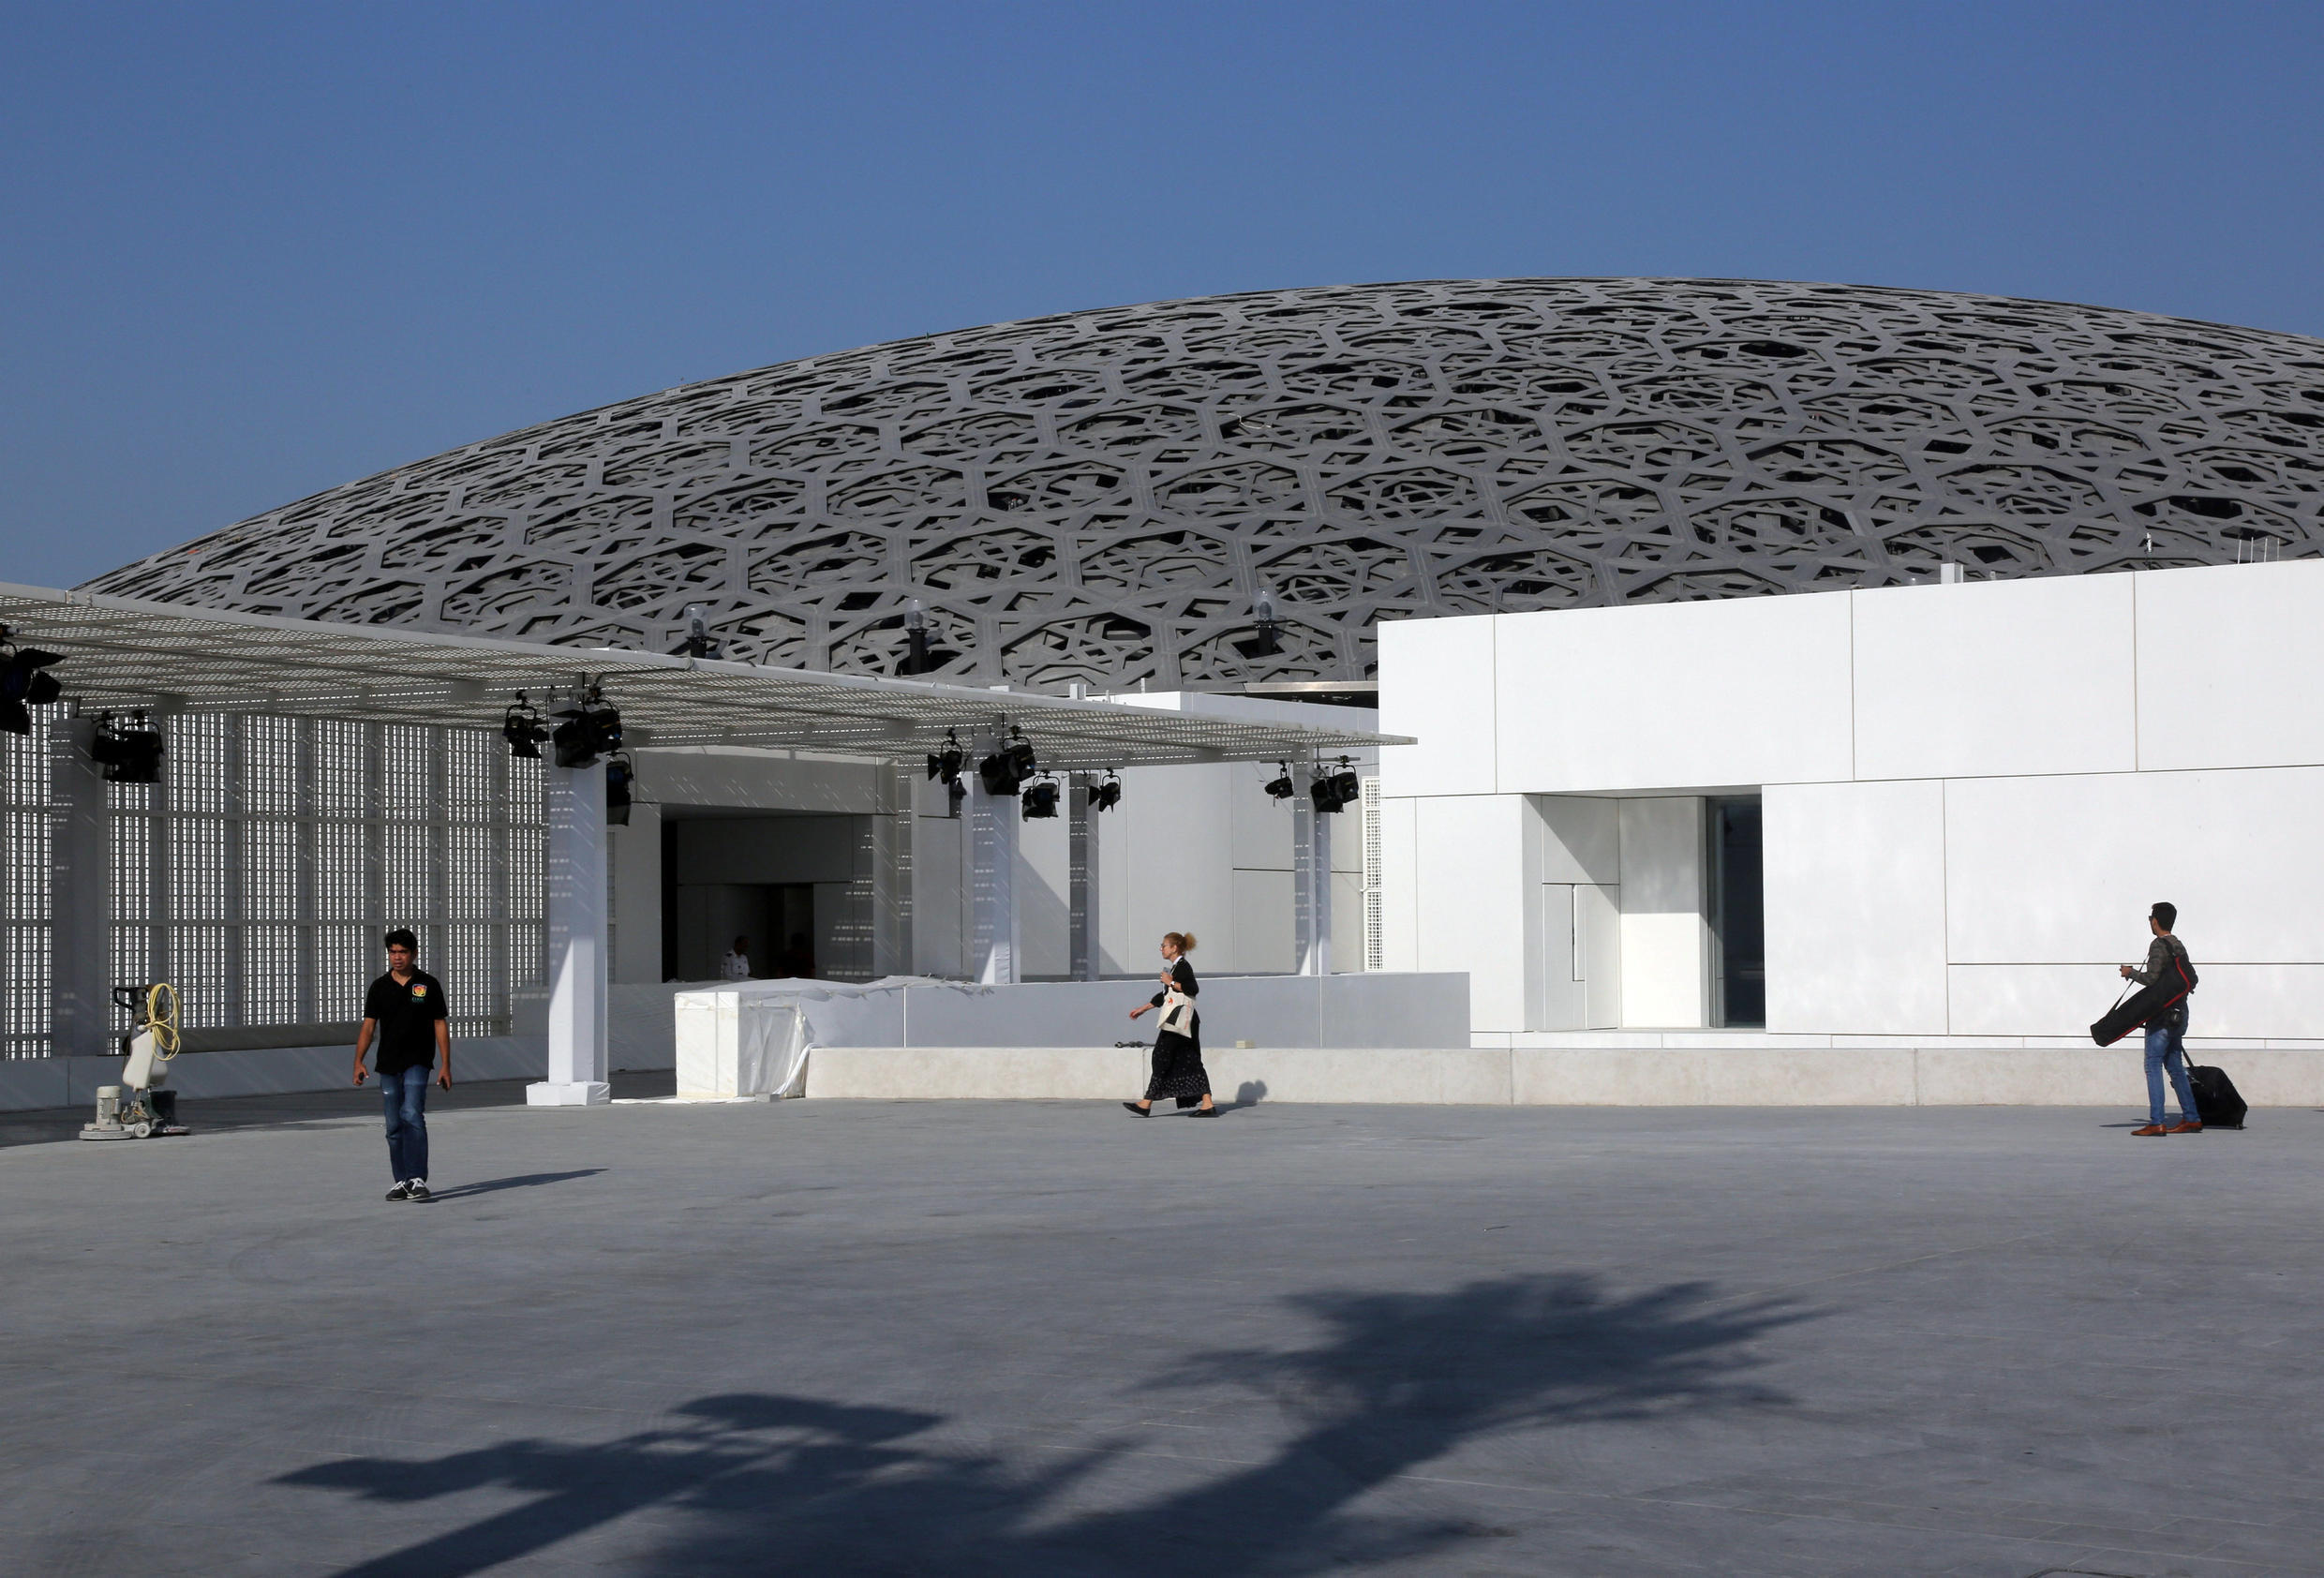 French architect Jean Nouvel designed the Louvre Abu Dhabi